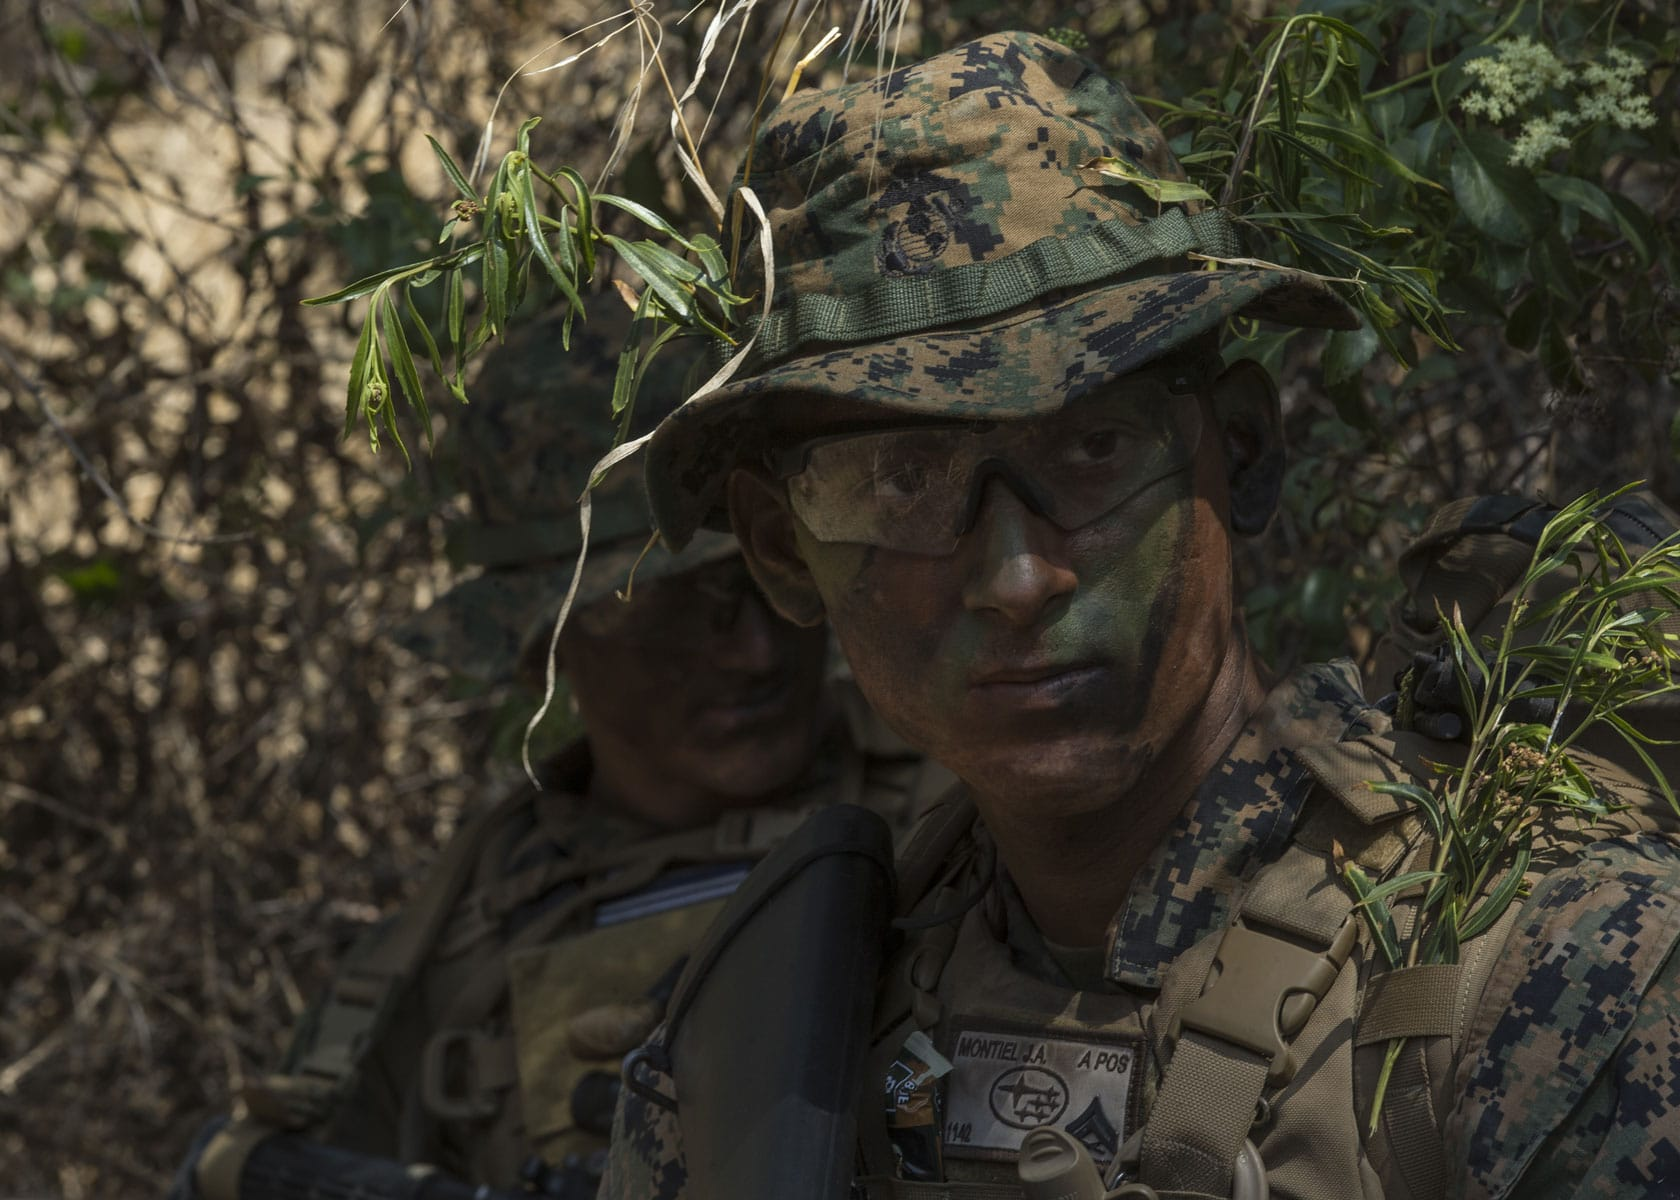 Marine Corps Cpl. Jelmer Montiel, a Generator Mechanic, takes cover during a simulated reconnaissance mission.